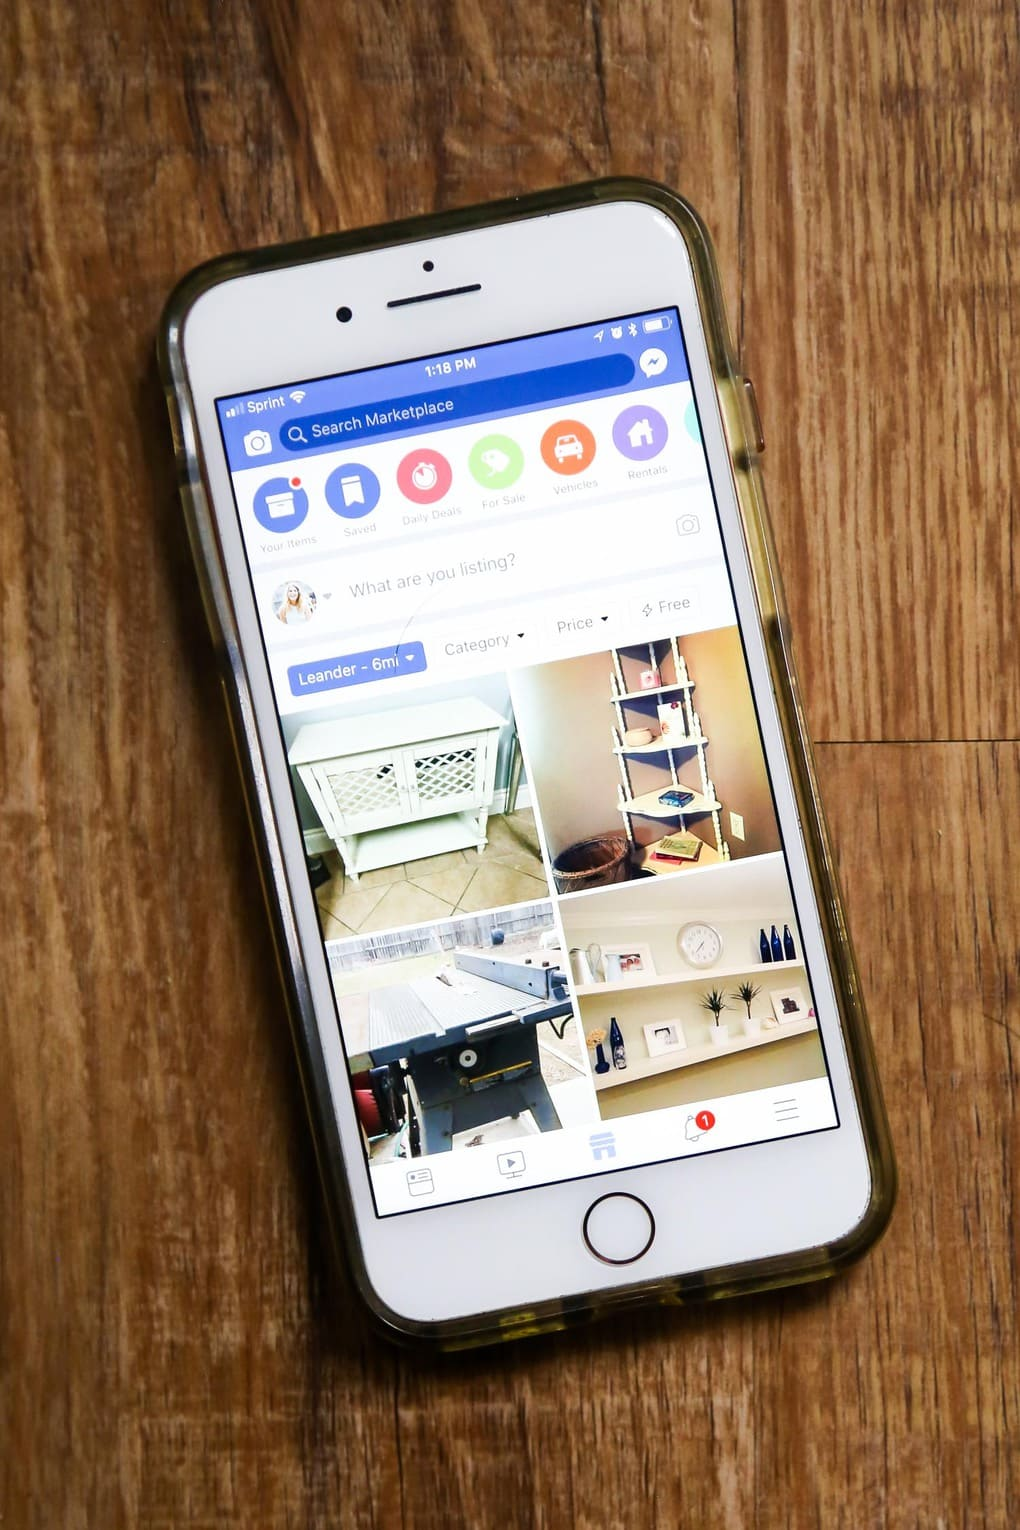 IPhone With Facebook Marketplace Pulled Up   How To Sell Furniture Online  Using Facebook Marketplace